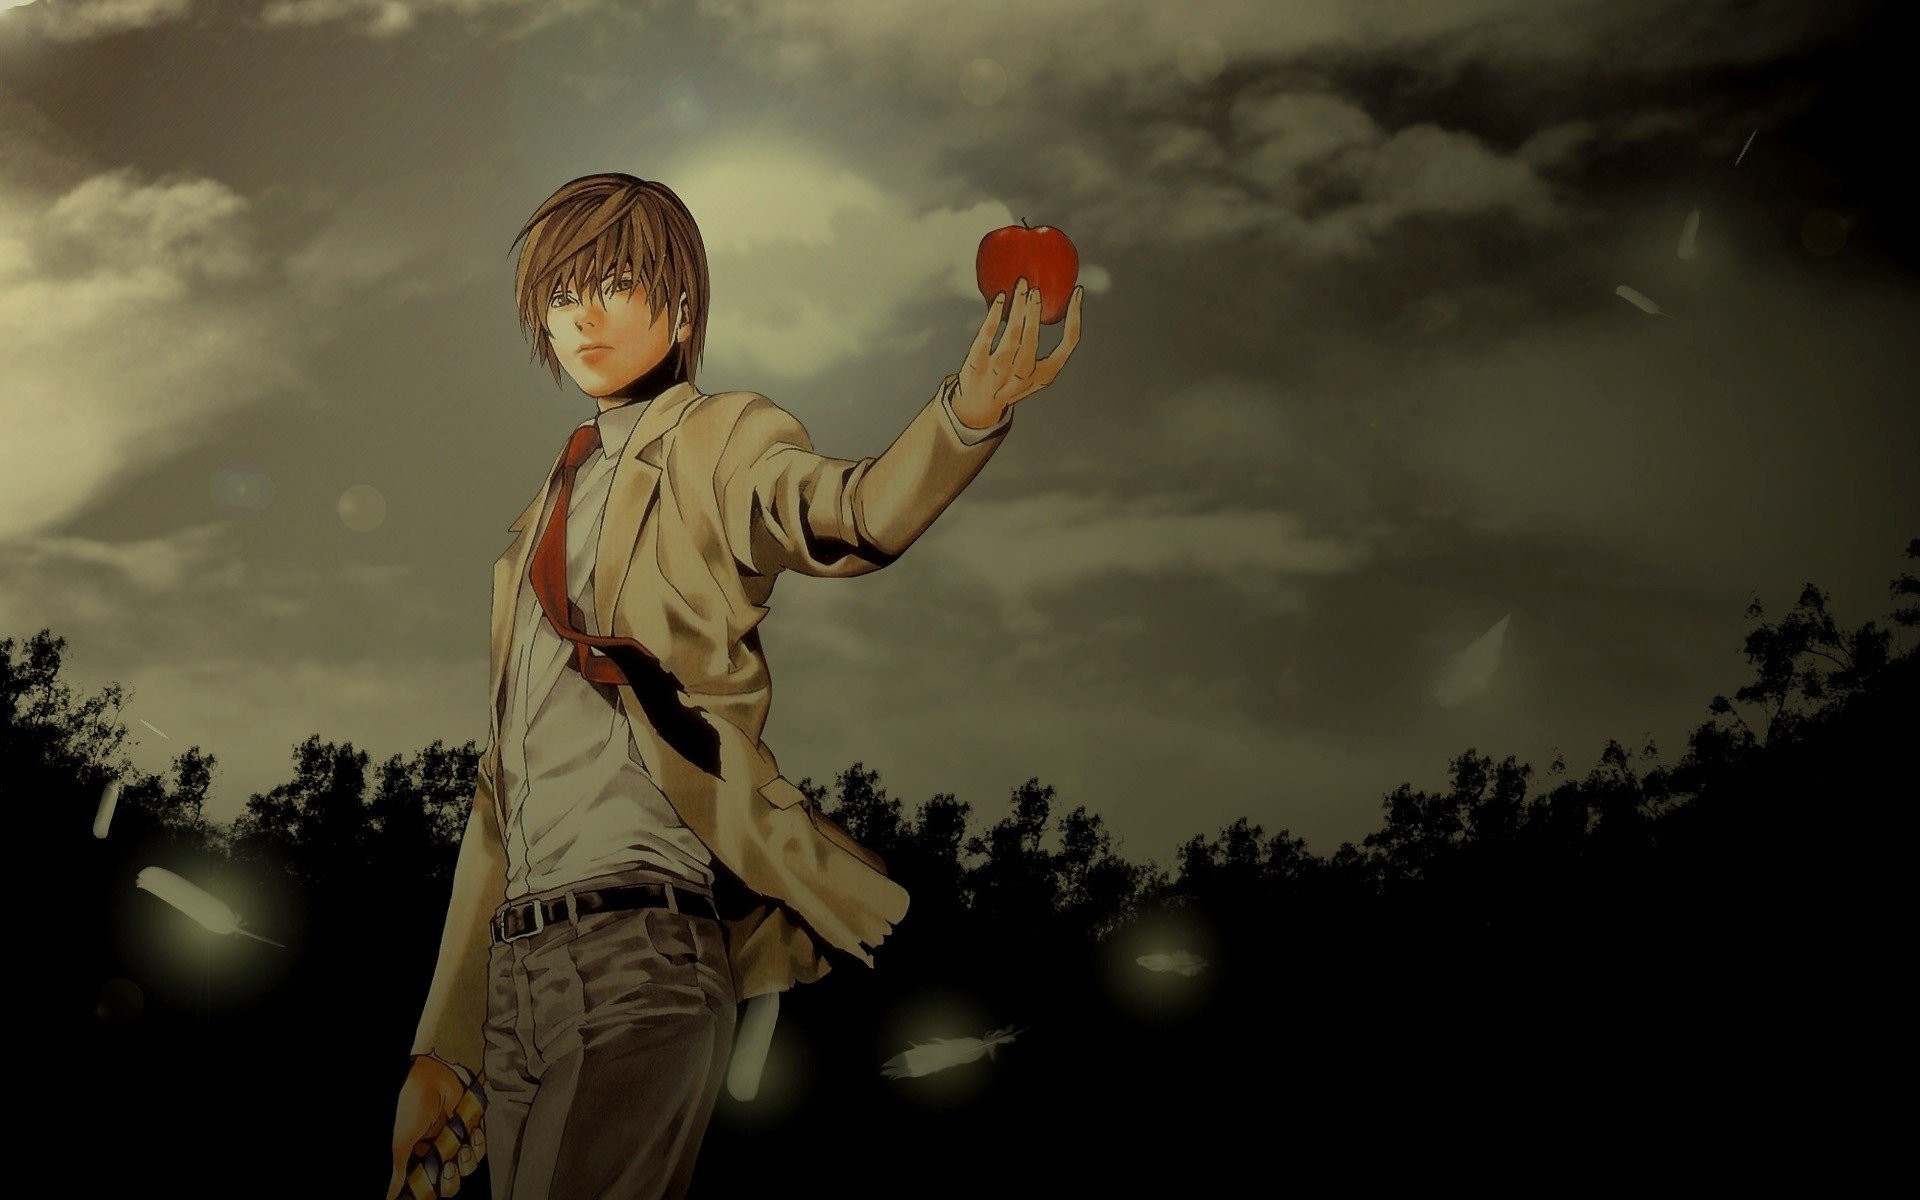 1920x1200 Death Note brunettes nature brown eyes Yagami Light standing anime anime  boys wallpaper |  | 243350 | WallpaperUP